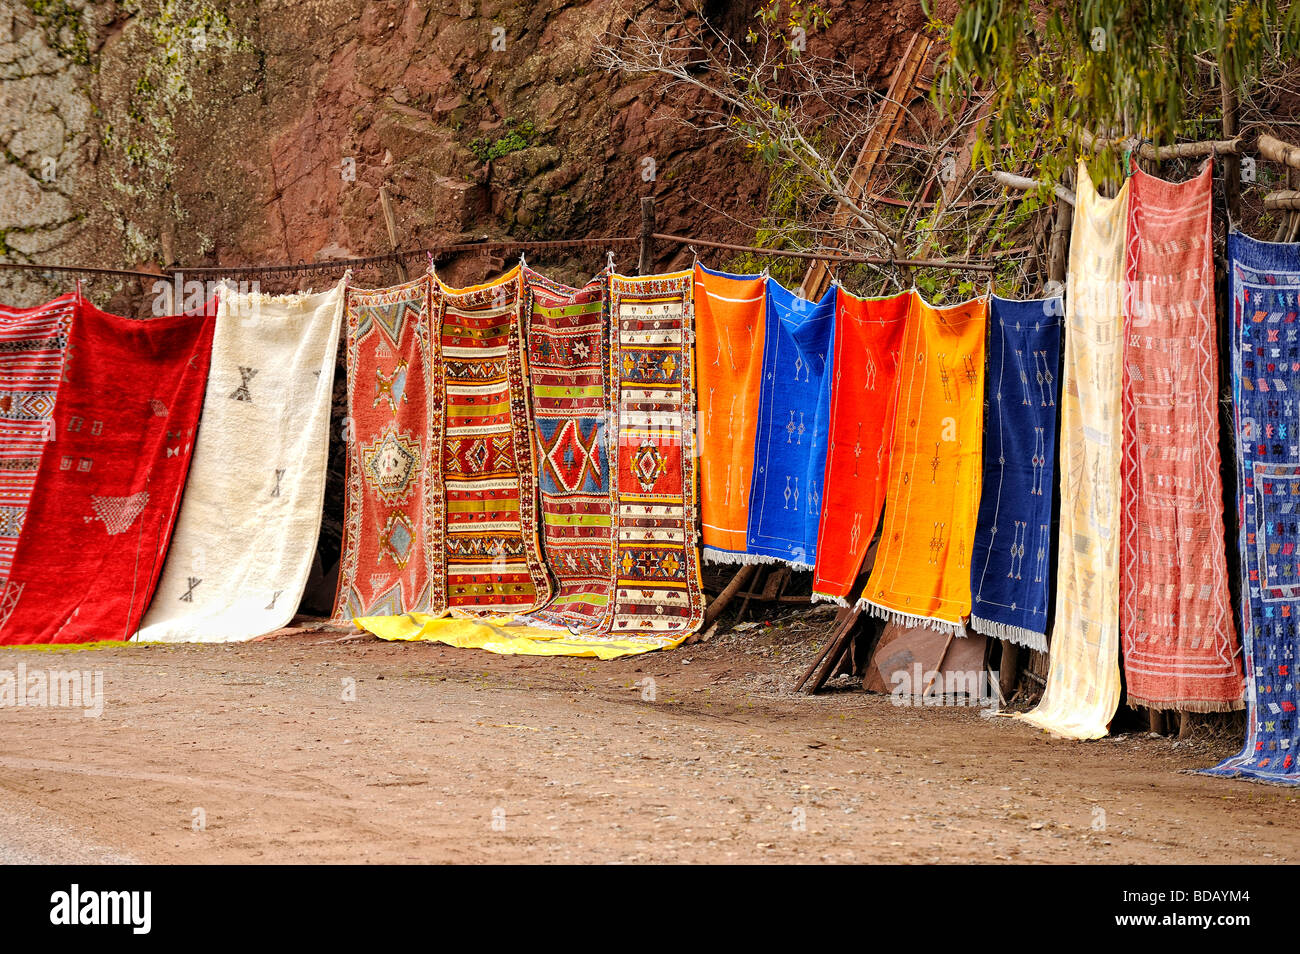 Moroccan carpets for sale on display along the road - Stock Image